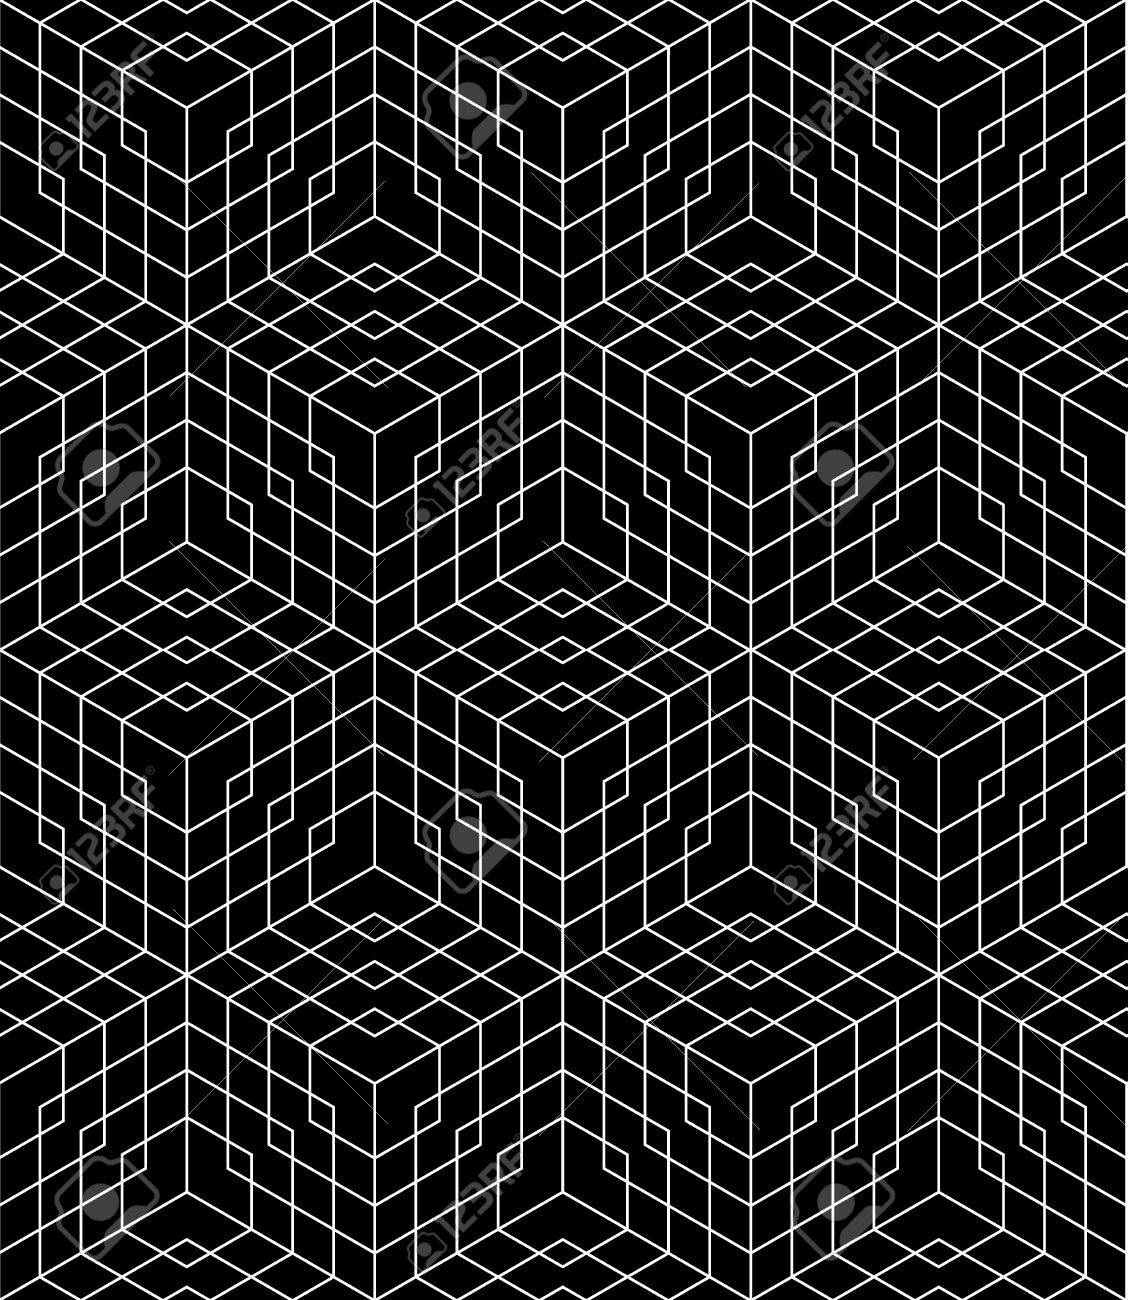 Bed sheet pattern texture - Vector Vector Modern Seamless Grid Pattern Black And White Textile Print Stylish Background Abstract Texture Monochrome Fashion Design Geometry Bed